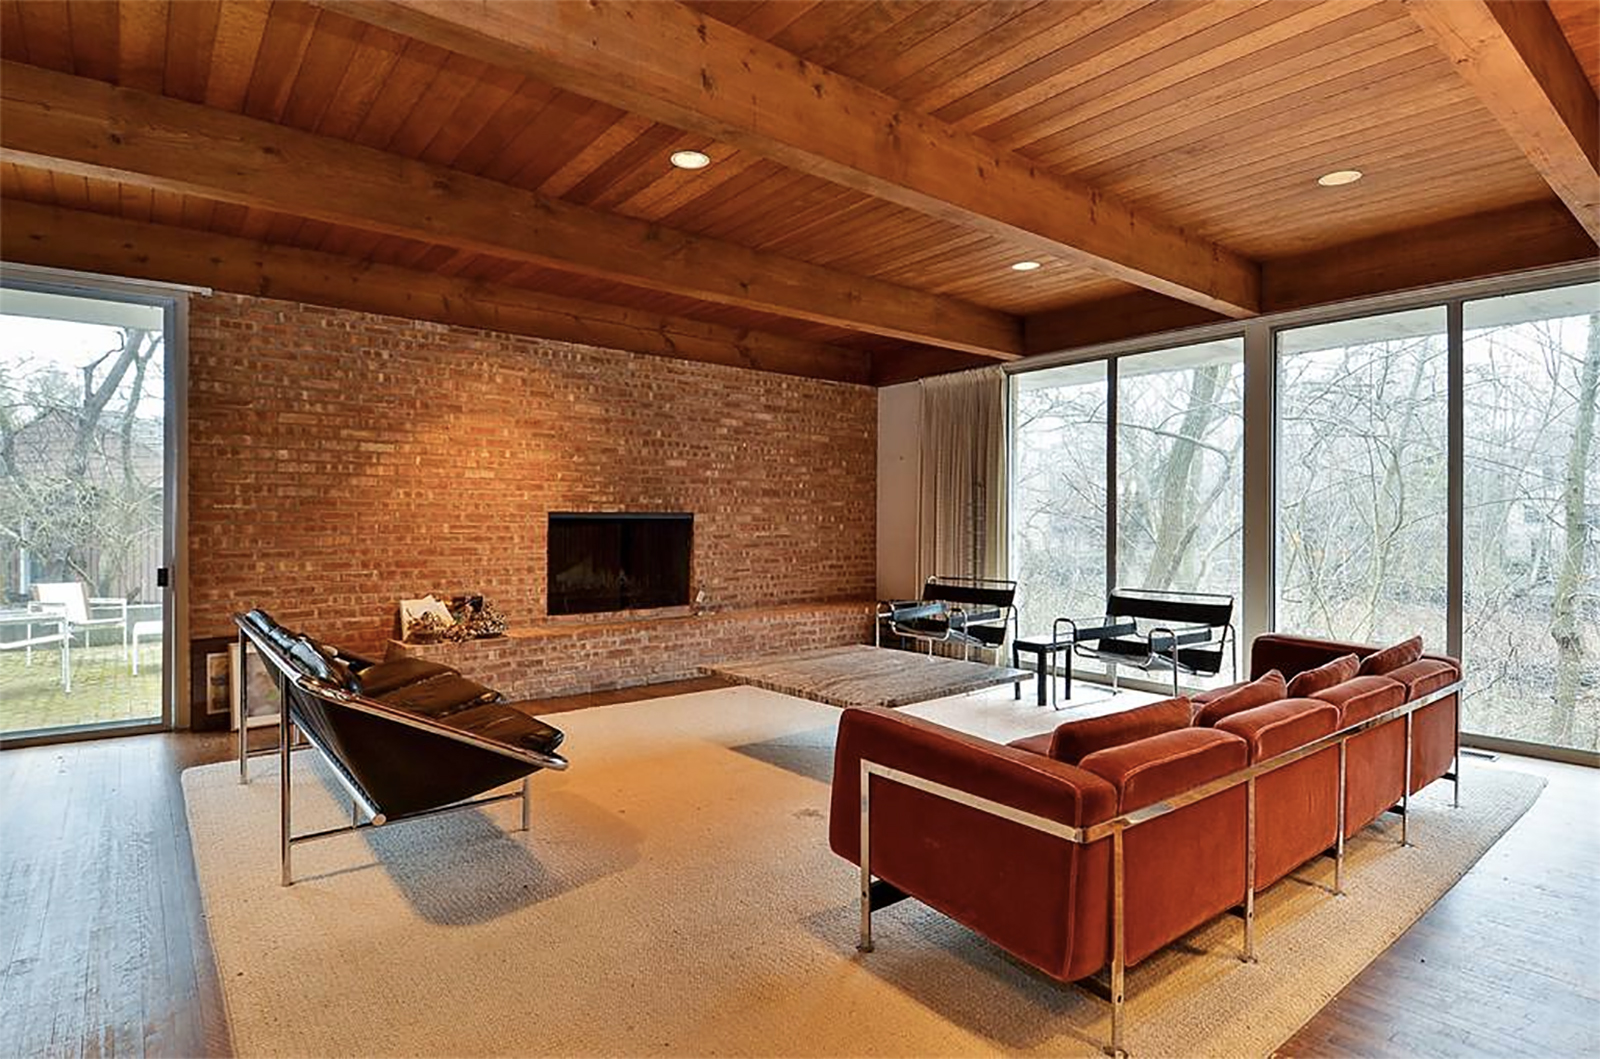 midcentury homes for sale: http://www.sothebysrealty.com/eng/sales/detail/180-l-1589-mdf8cj/spectacular-location-for-a-redevelopment-project-glencoe-il-60022